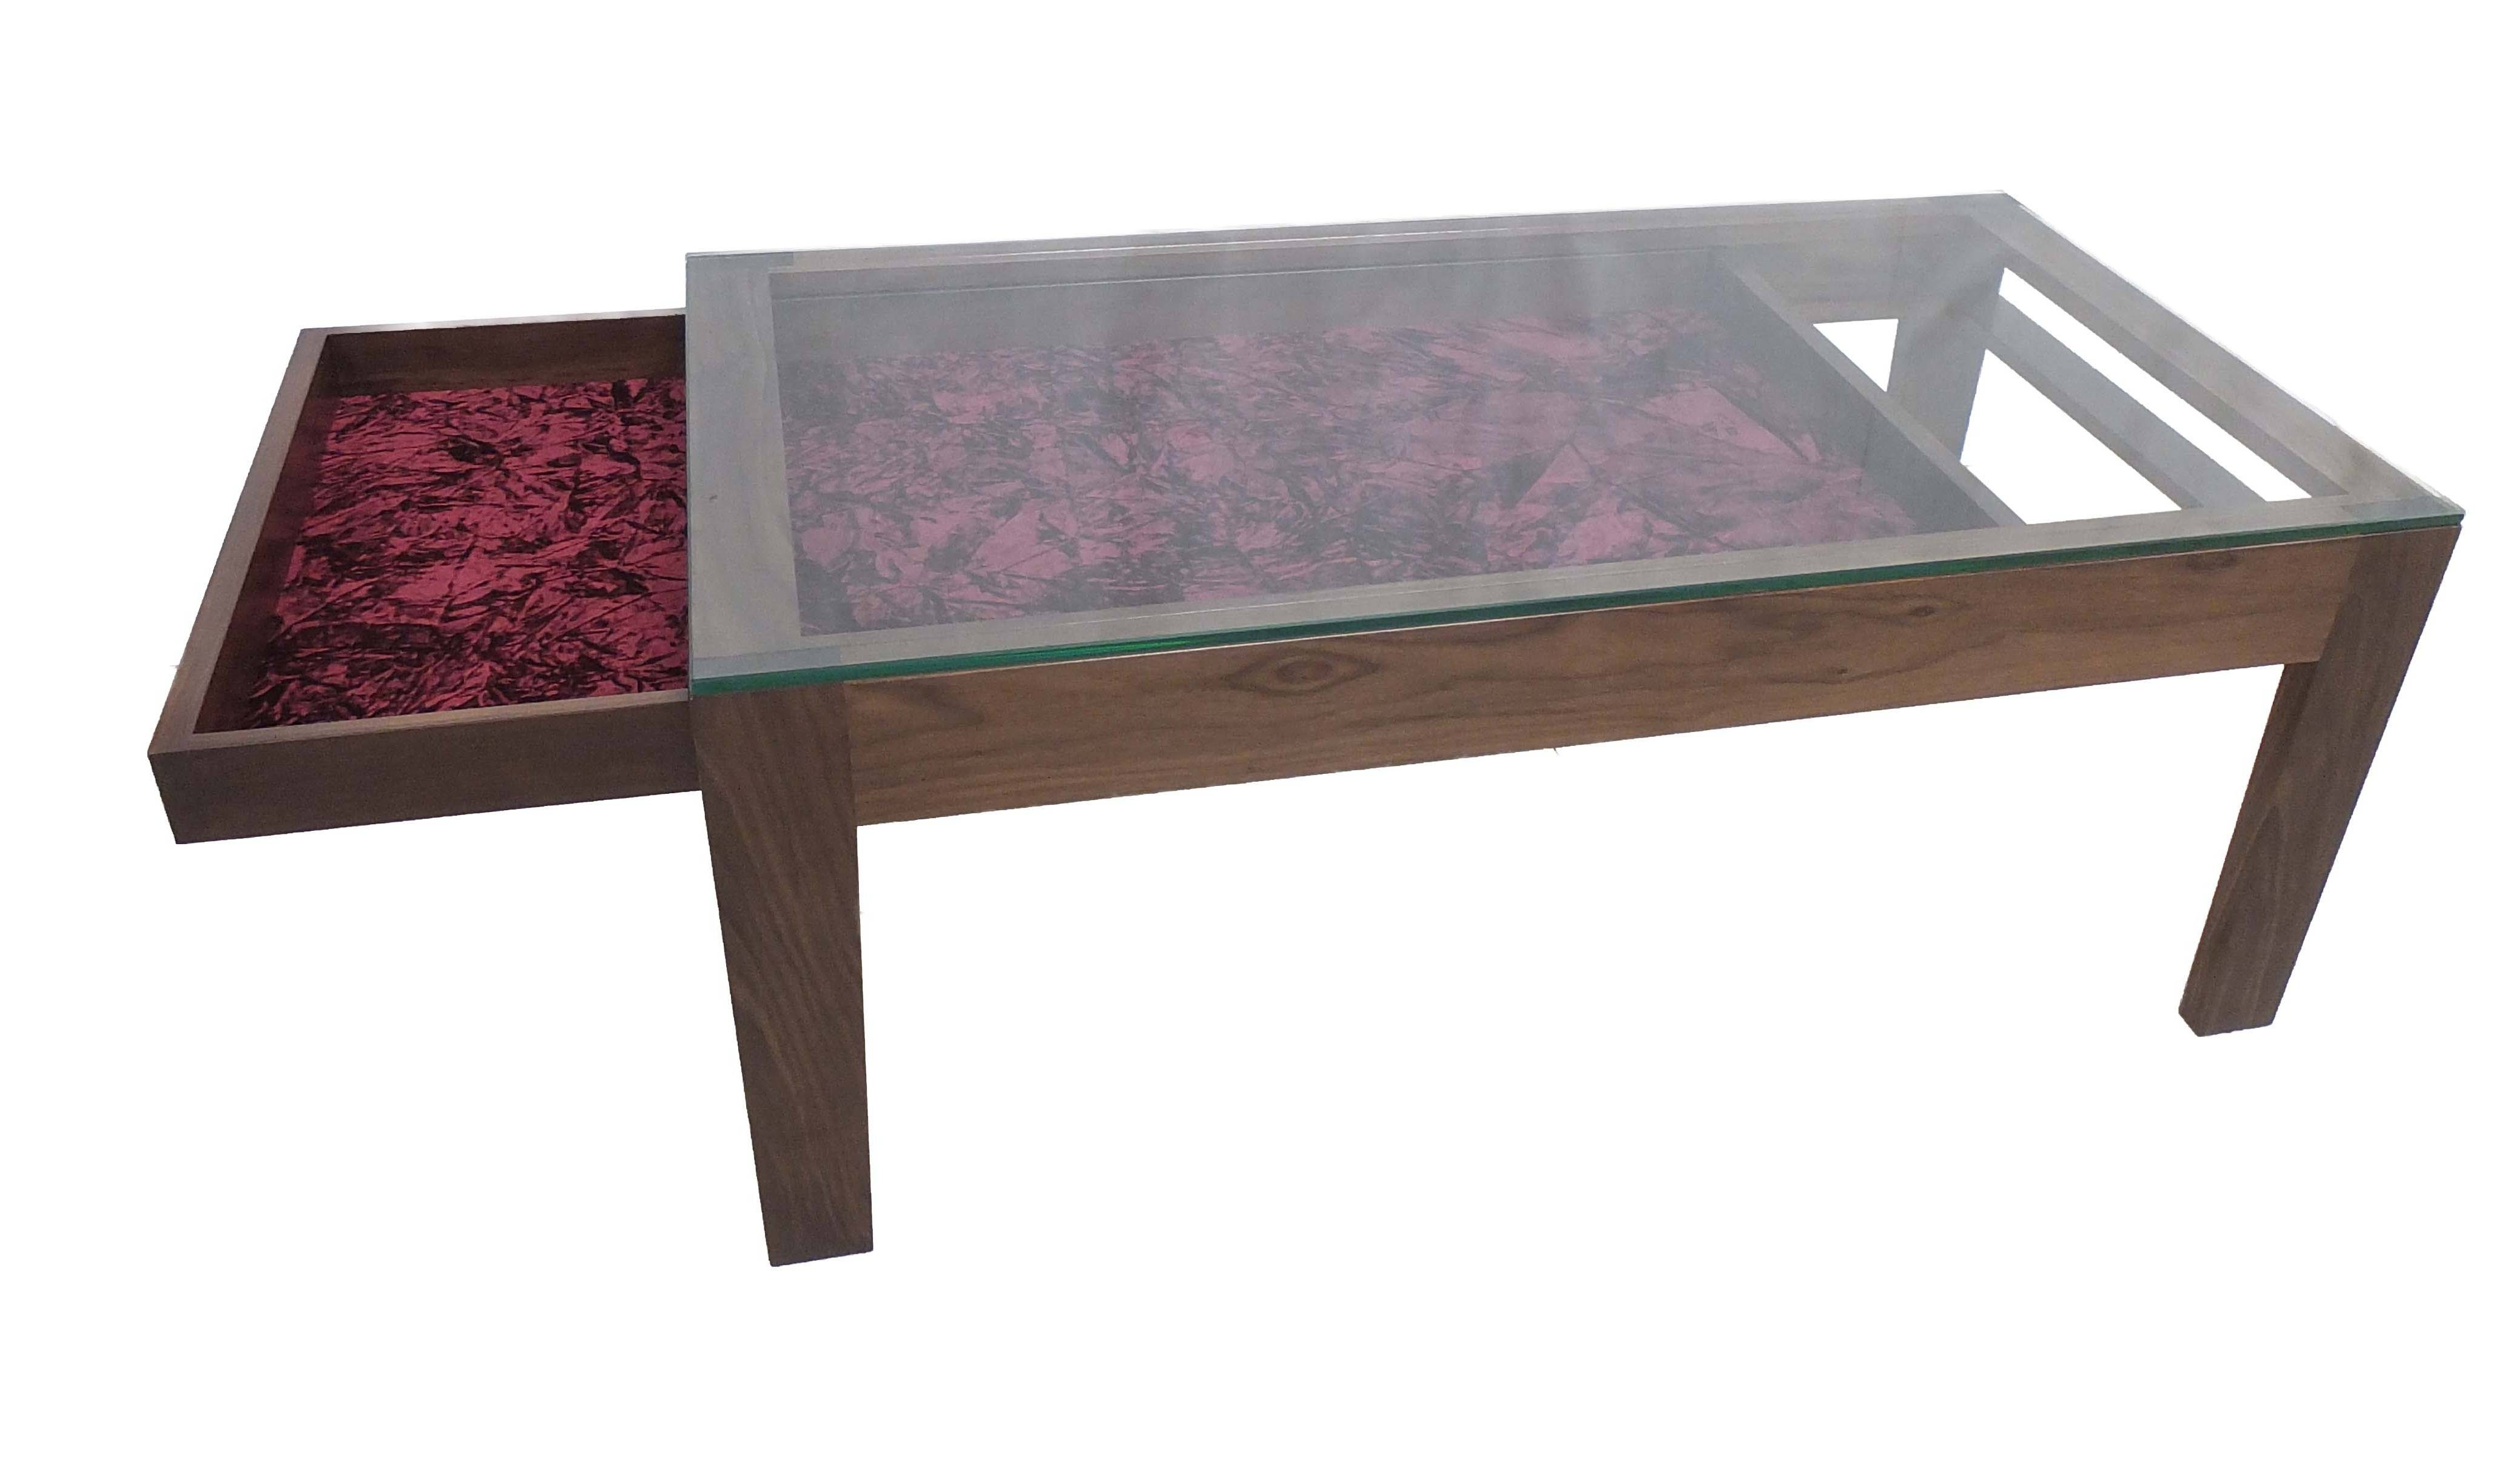 30 Best Collection of Glass Top Display Coffee Tables With Drawers